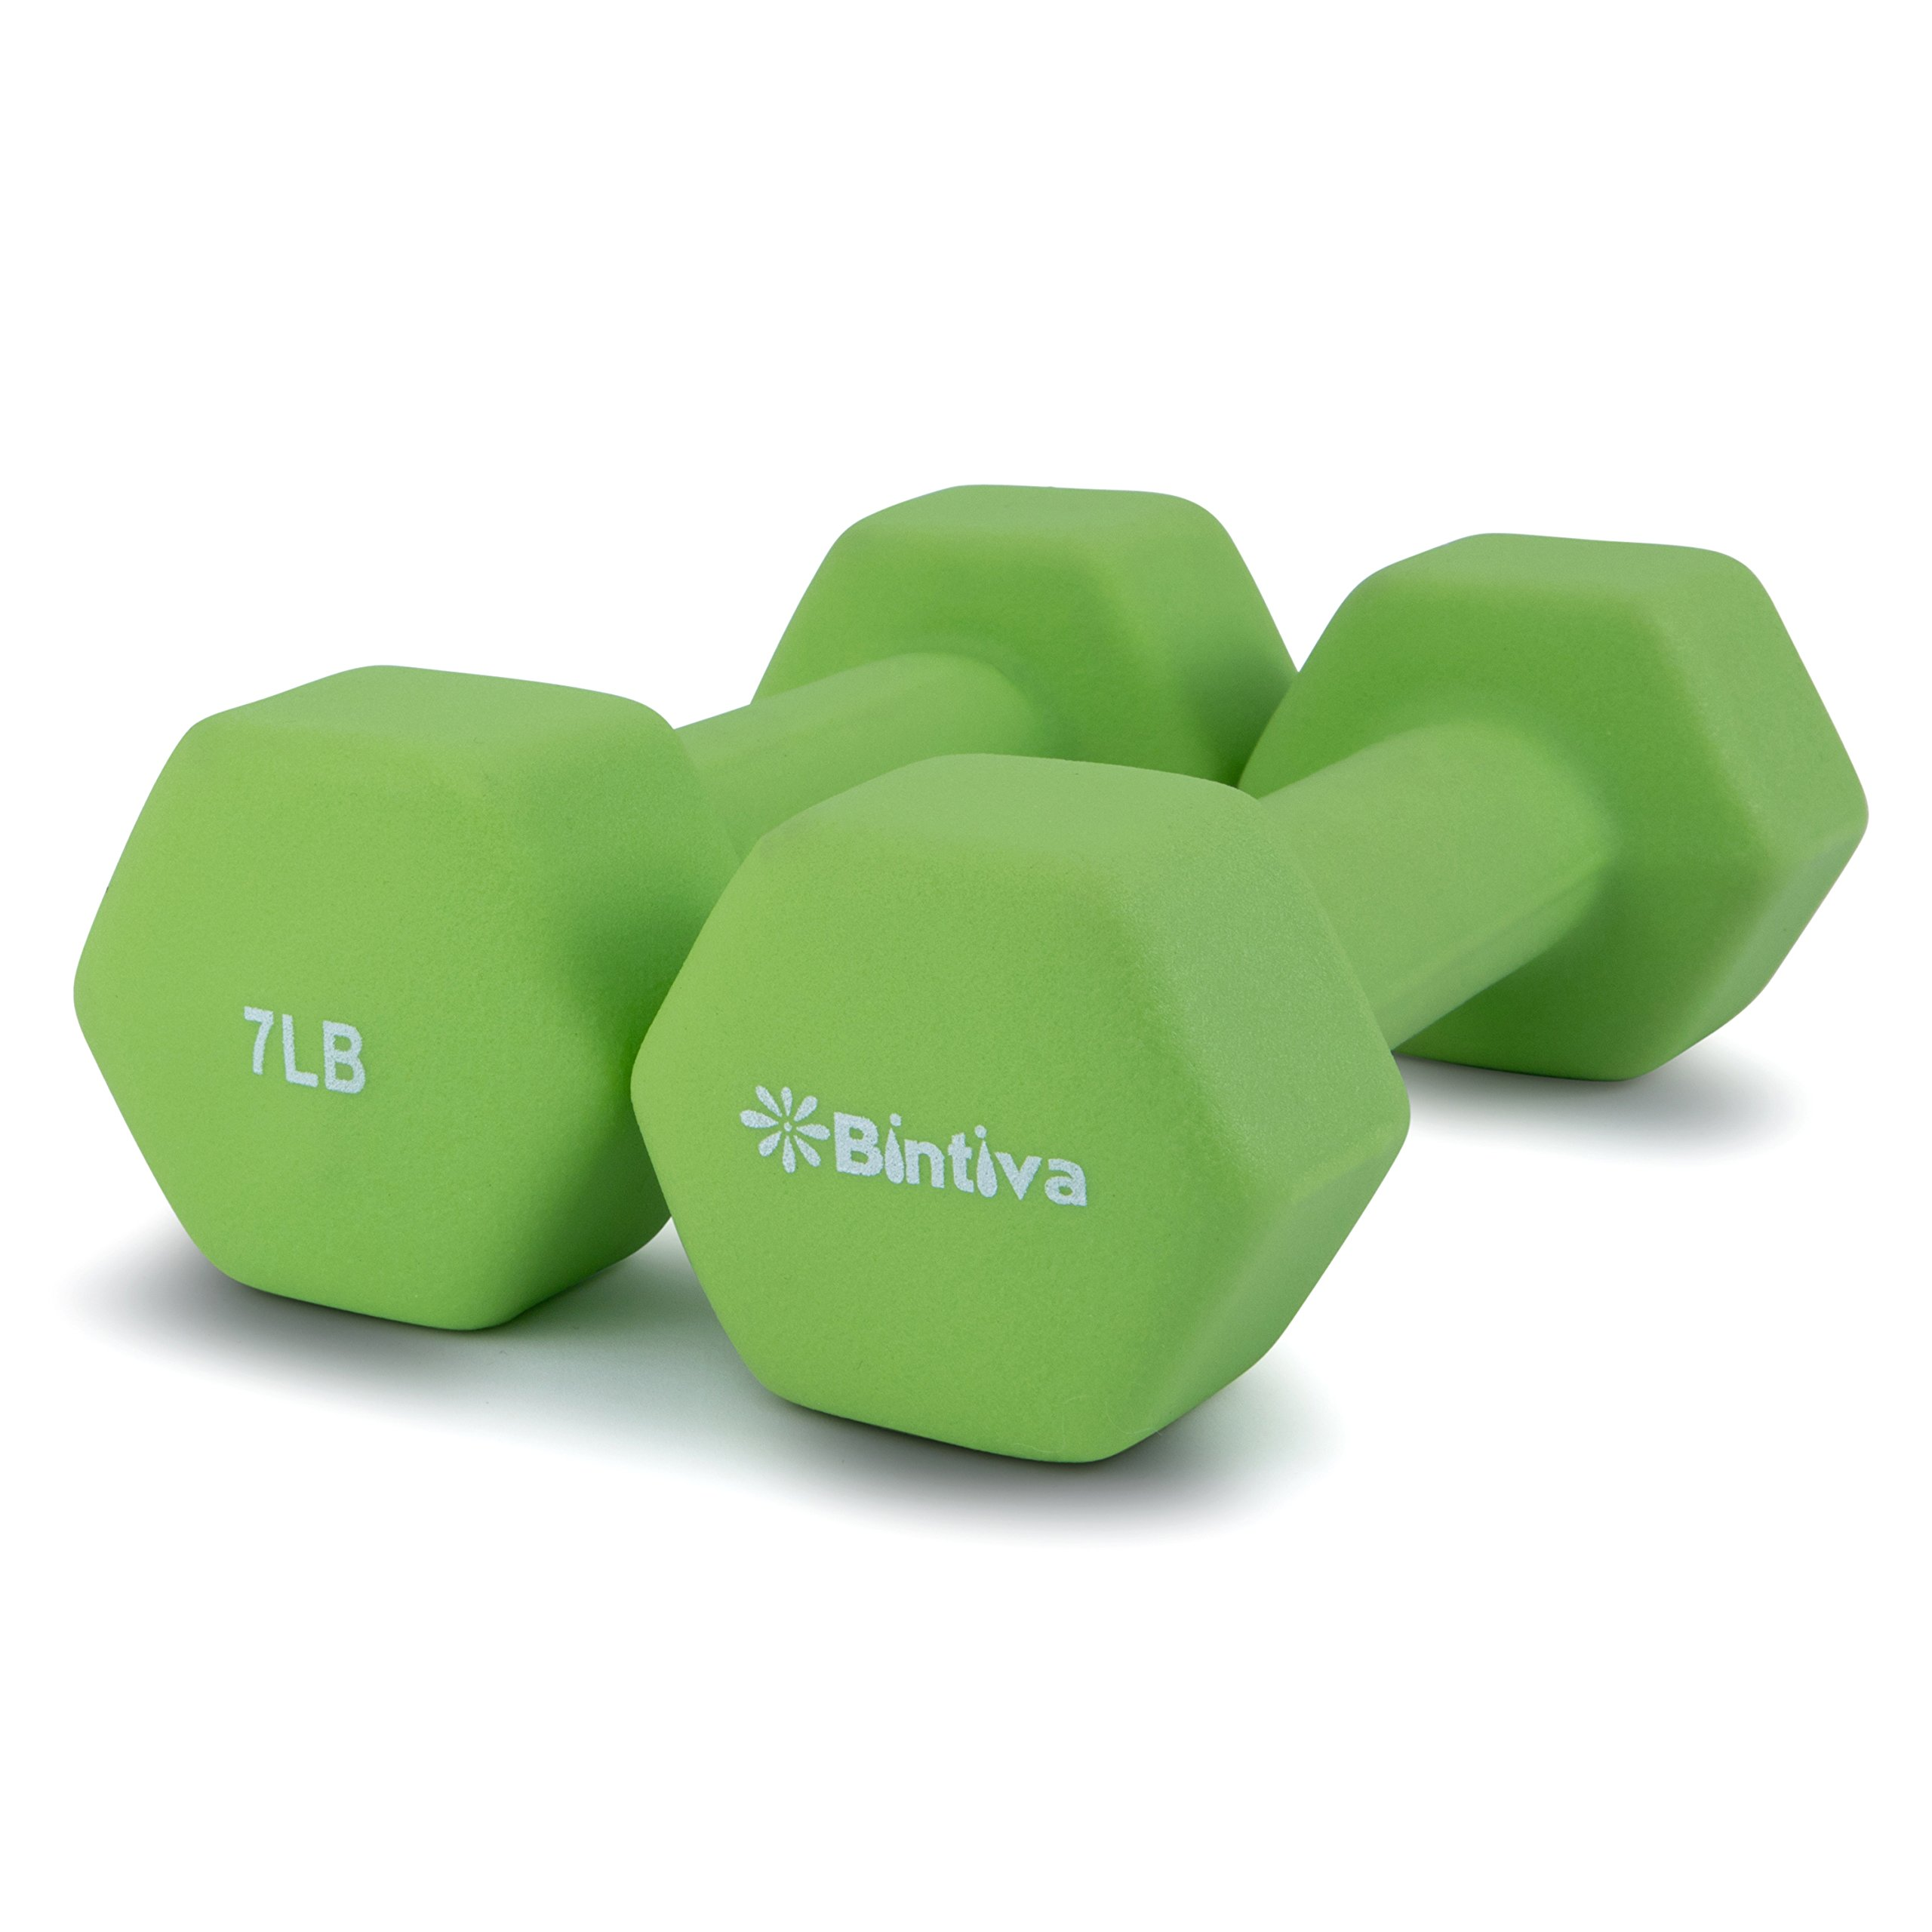 Bintiva Professional Grade, Non Slip Grip, Neoprene Coated Dumbbells 7 lbs Pair(green)